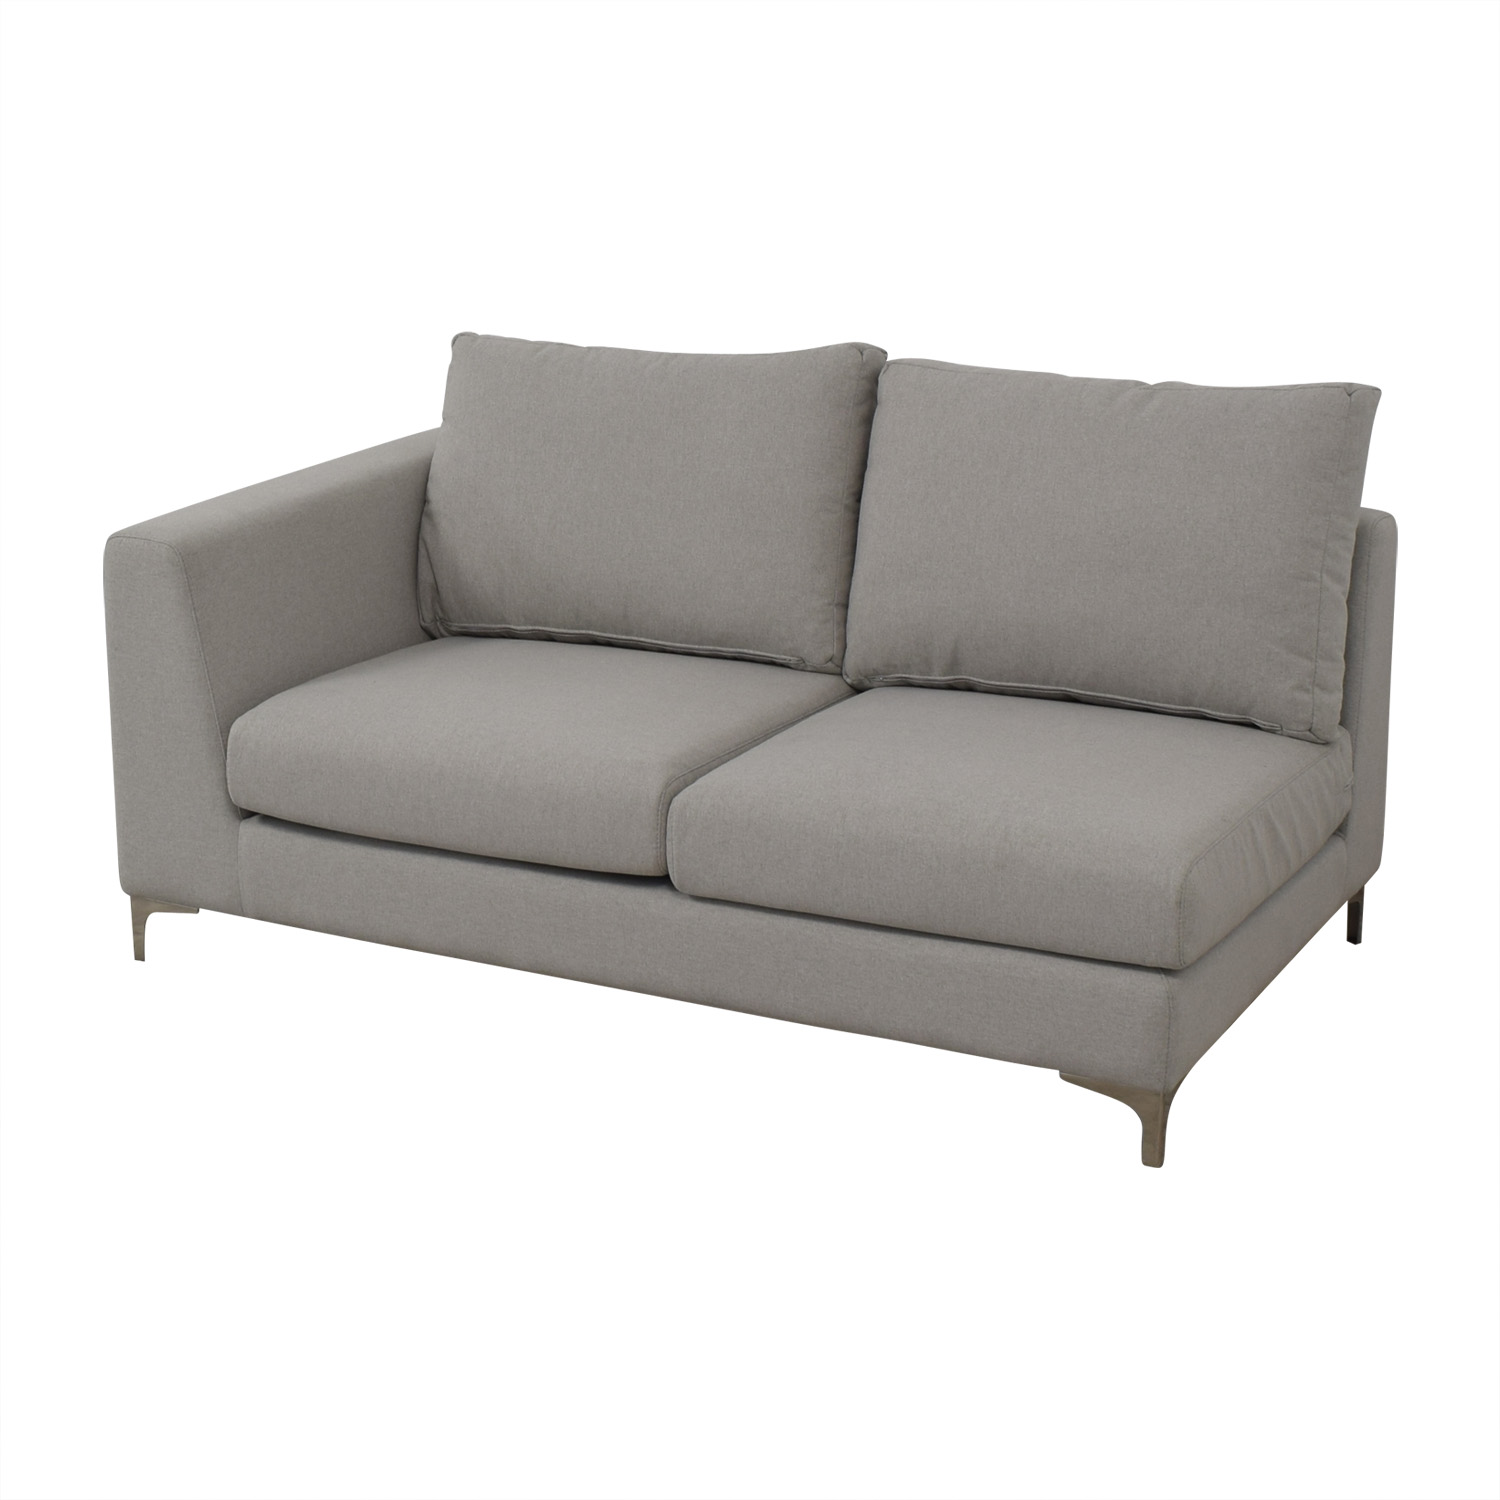 Interior Define Mint Asher Right Extended Chaise Lounge grey